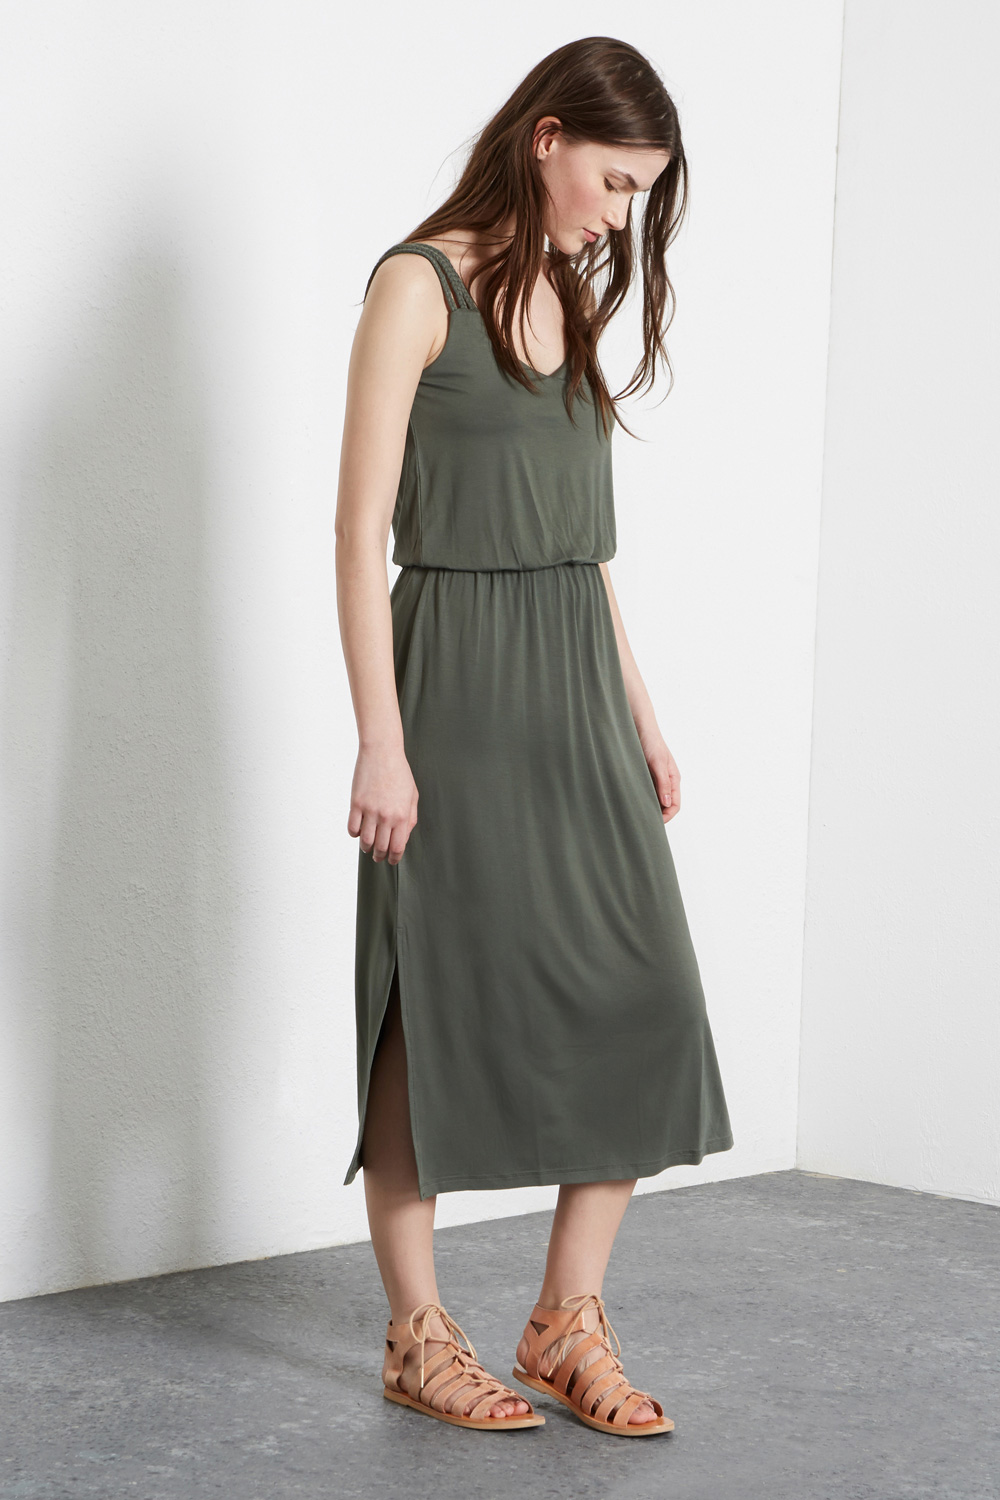 Plait-strap midi dress, £28, Warehouse